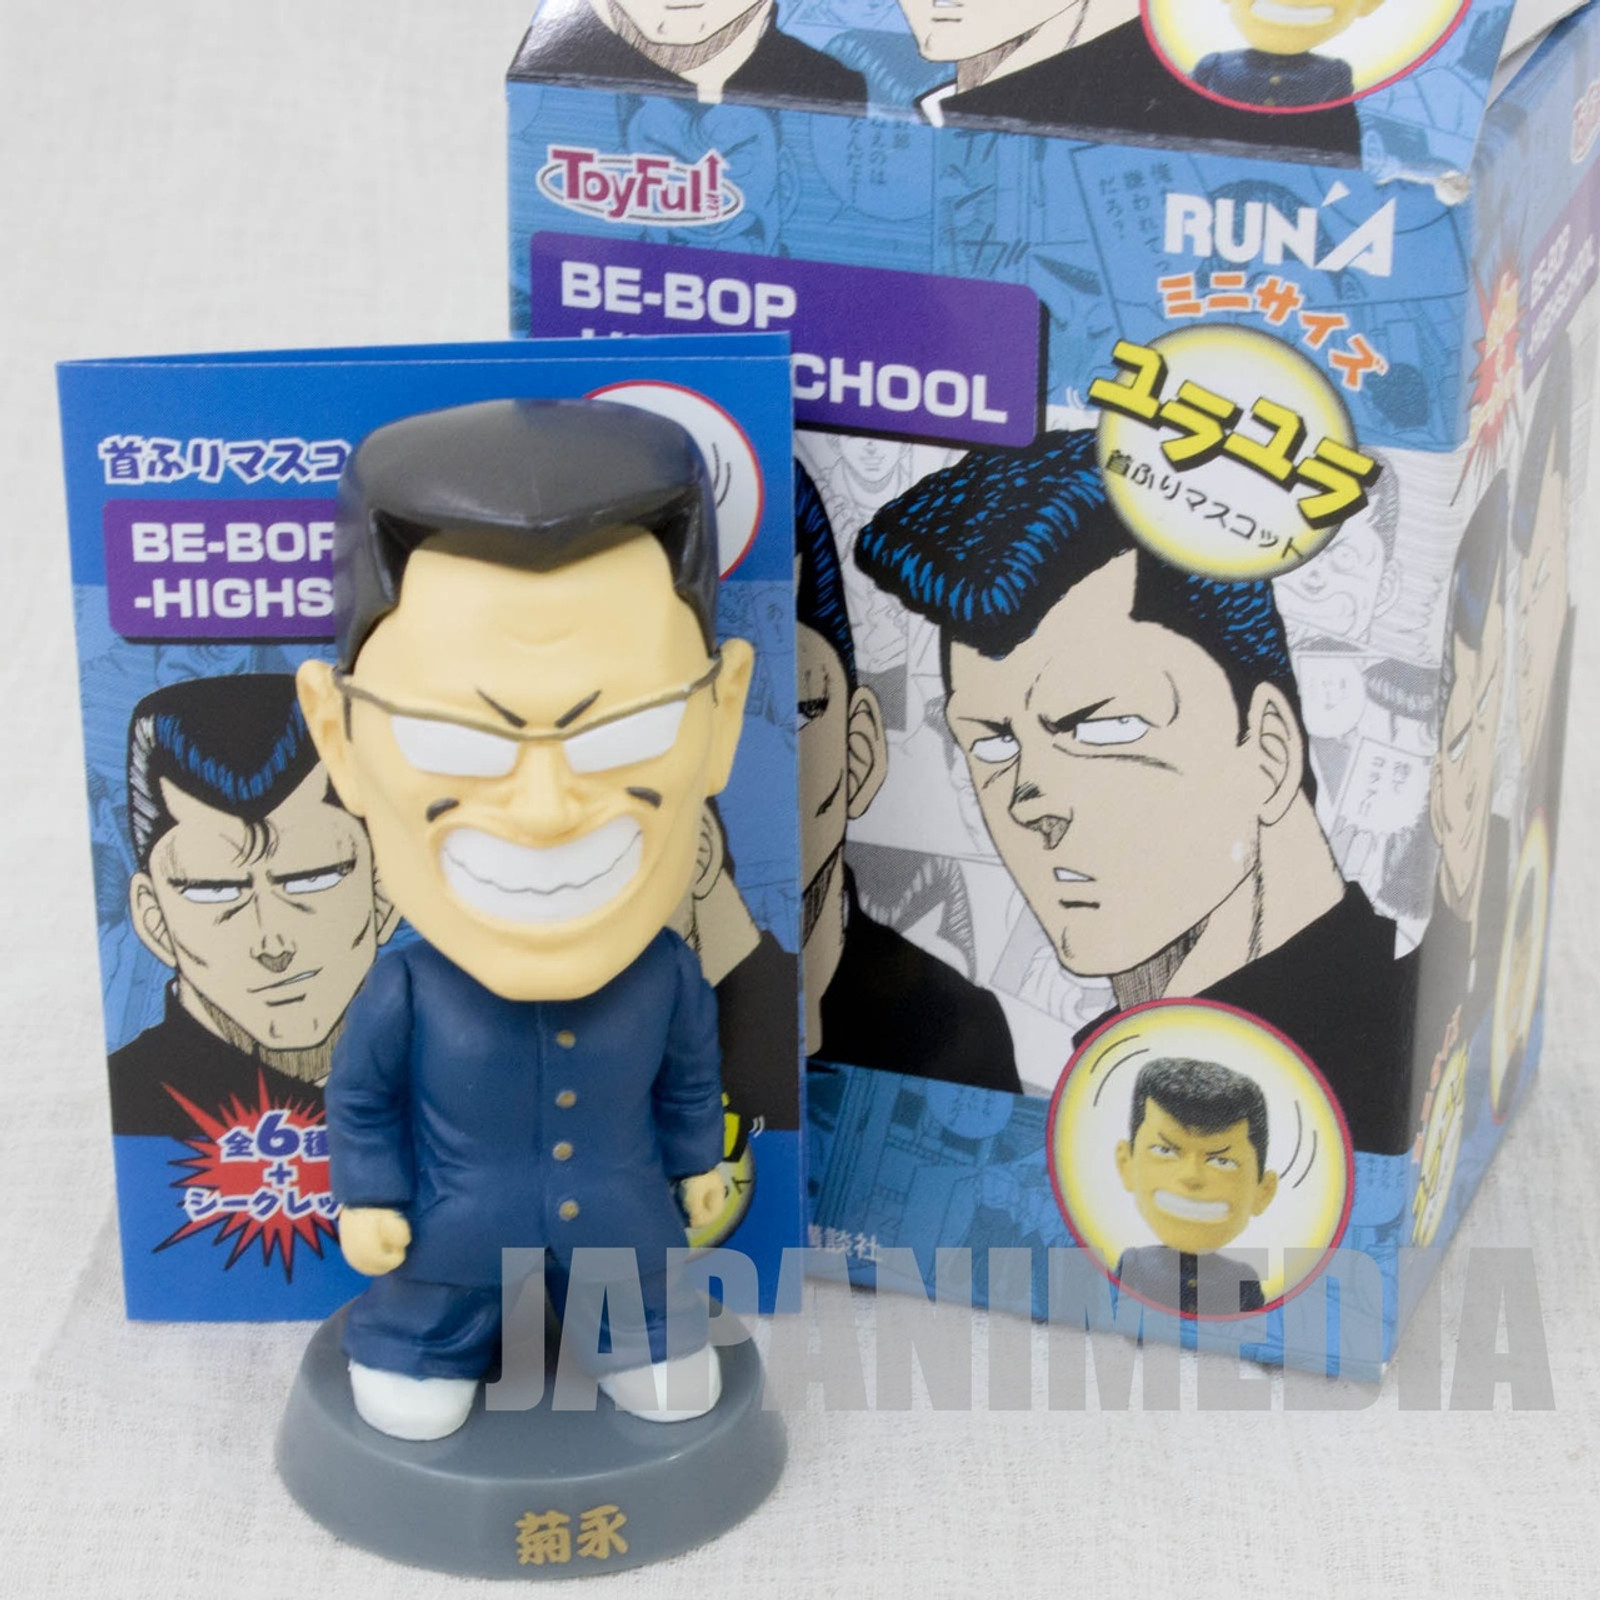 Be-Bop High School Kikunaga Bobble Head Figure Toyfull JAPAN MANGA BE BOP